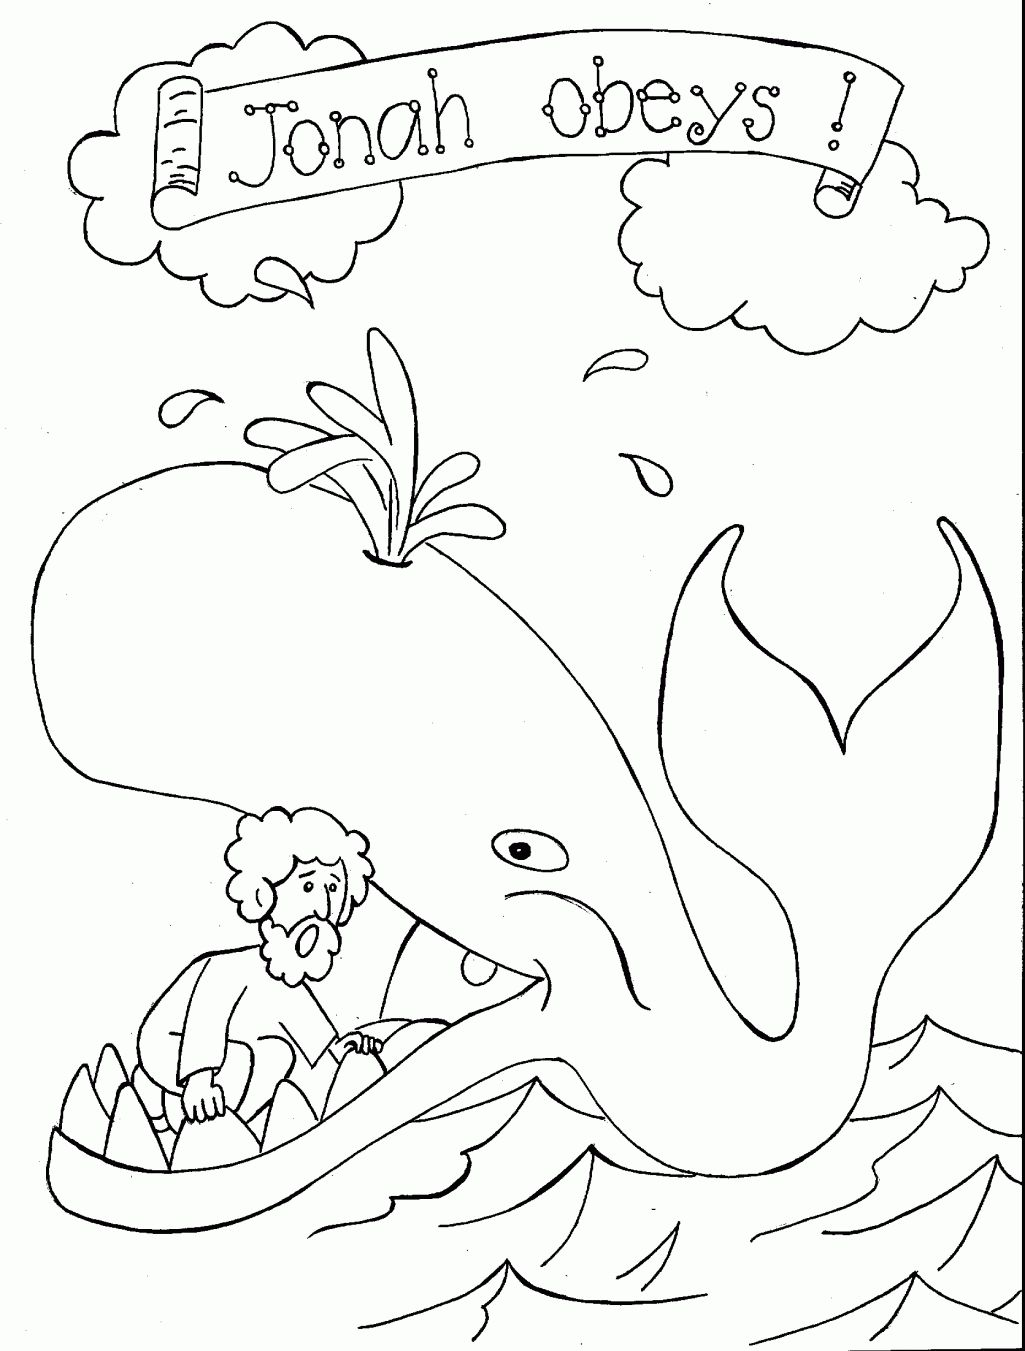 Clip Art Sunday School Coloring Pages For Preschoolers Free 1000 images about biblical cut and paste print color on pinterest coloring books noah ark